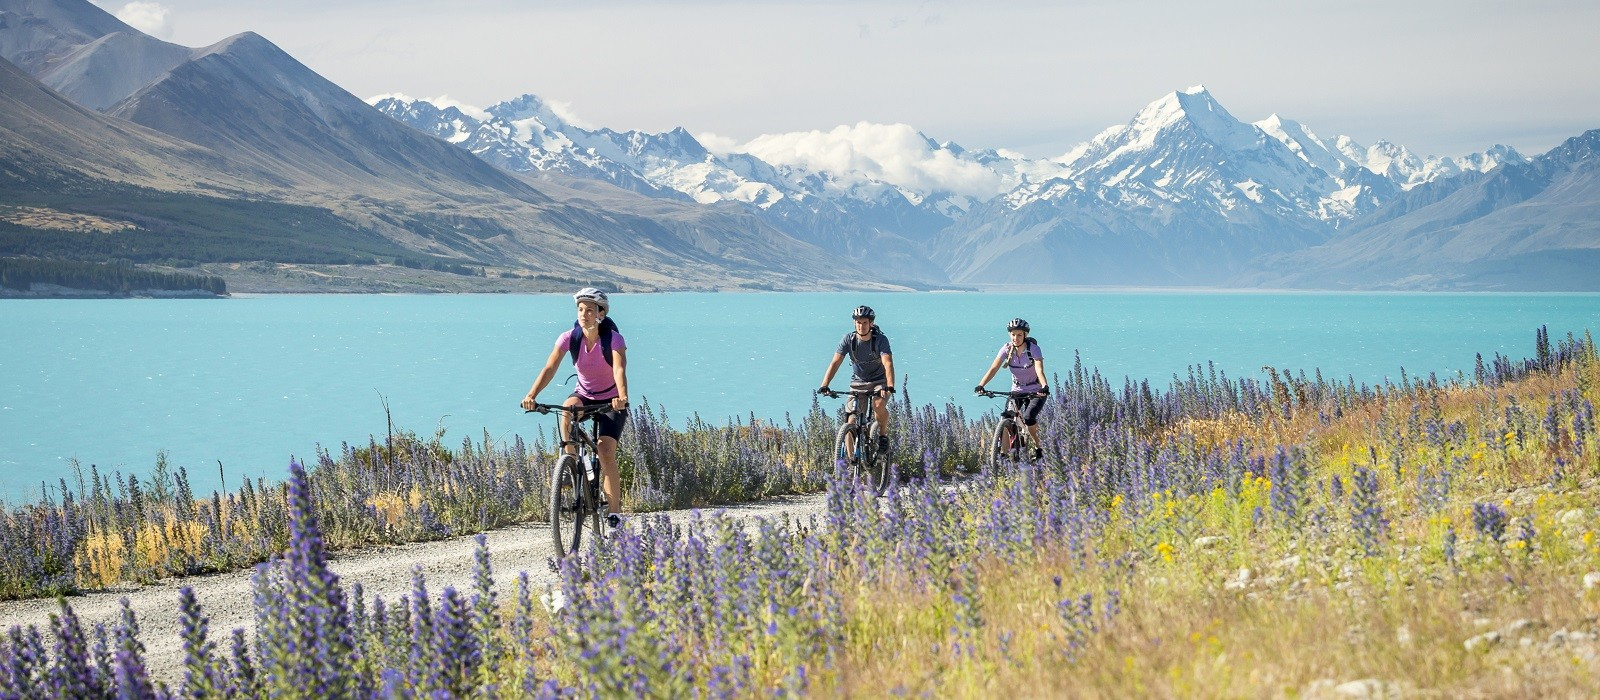 Enchanting Travels New Zealand Tours -Lake-Pukaki-Canterbury-Miles-Holden